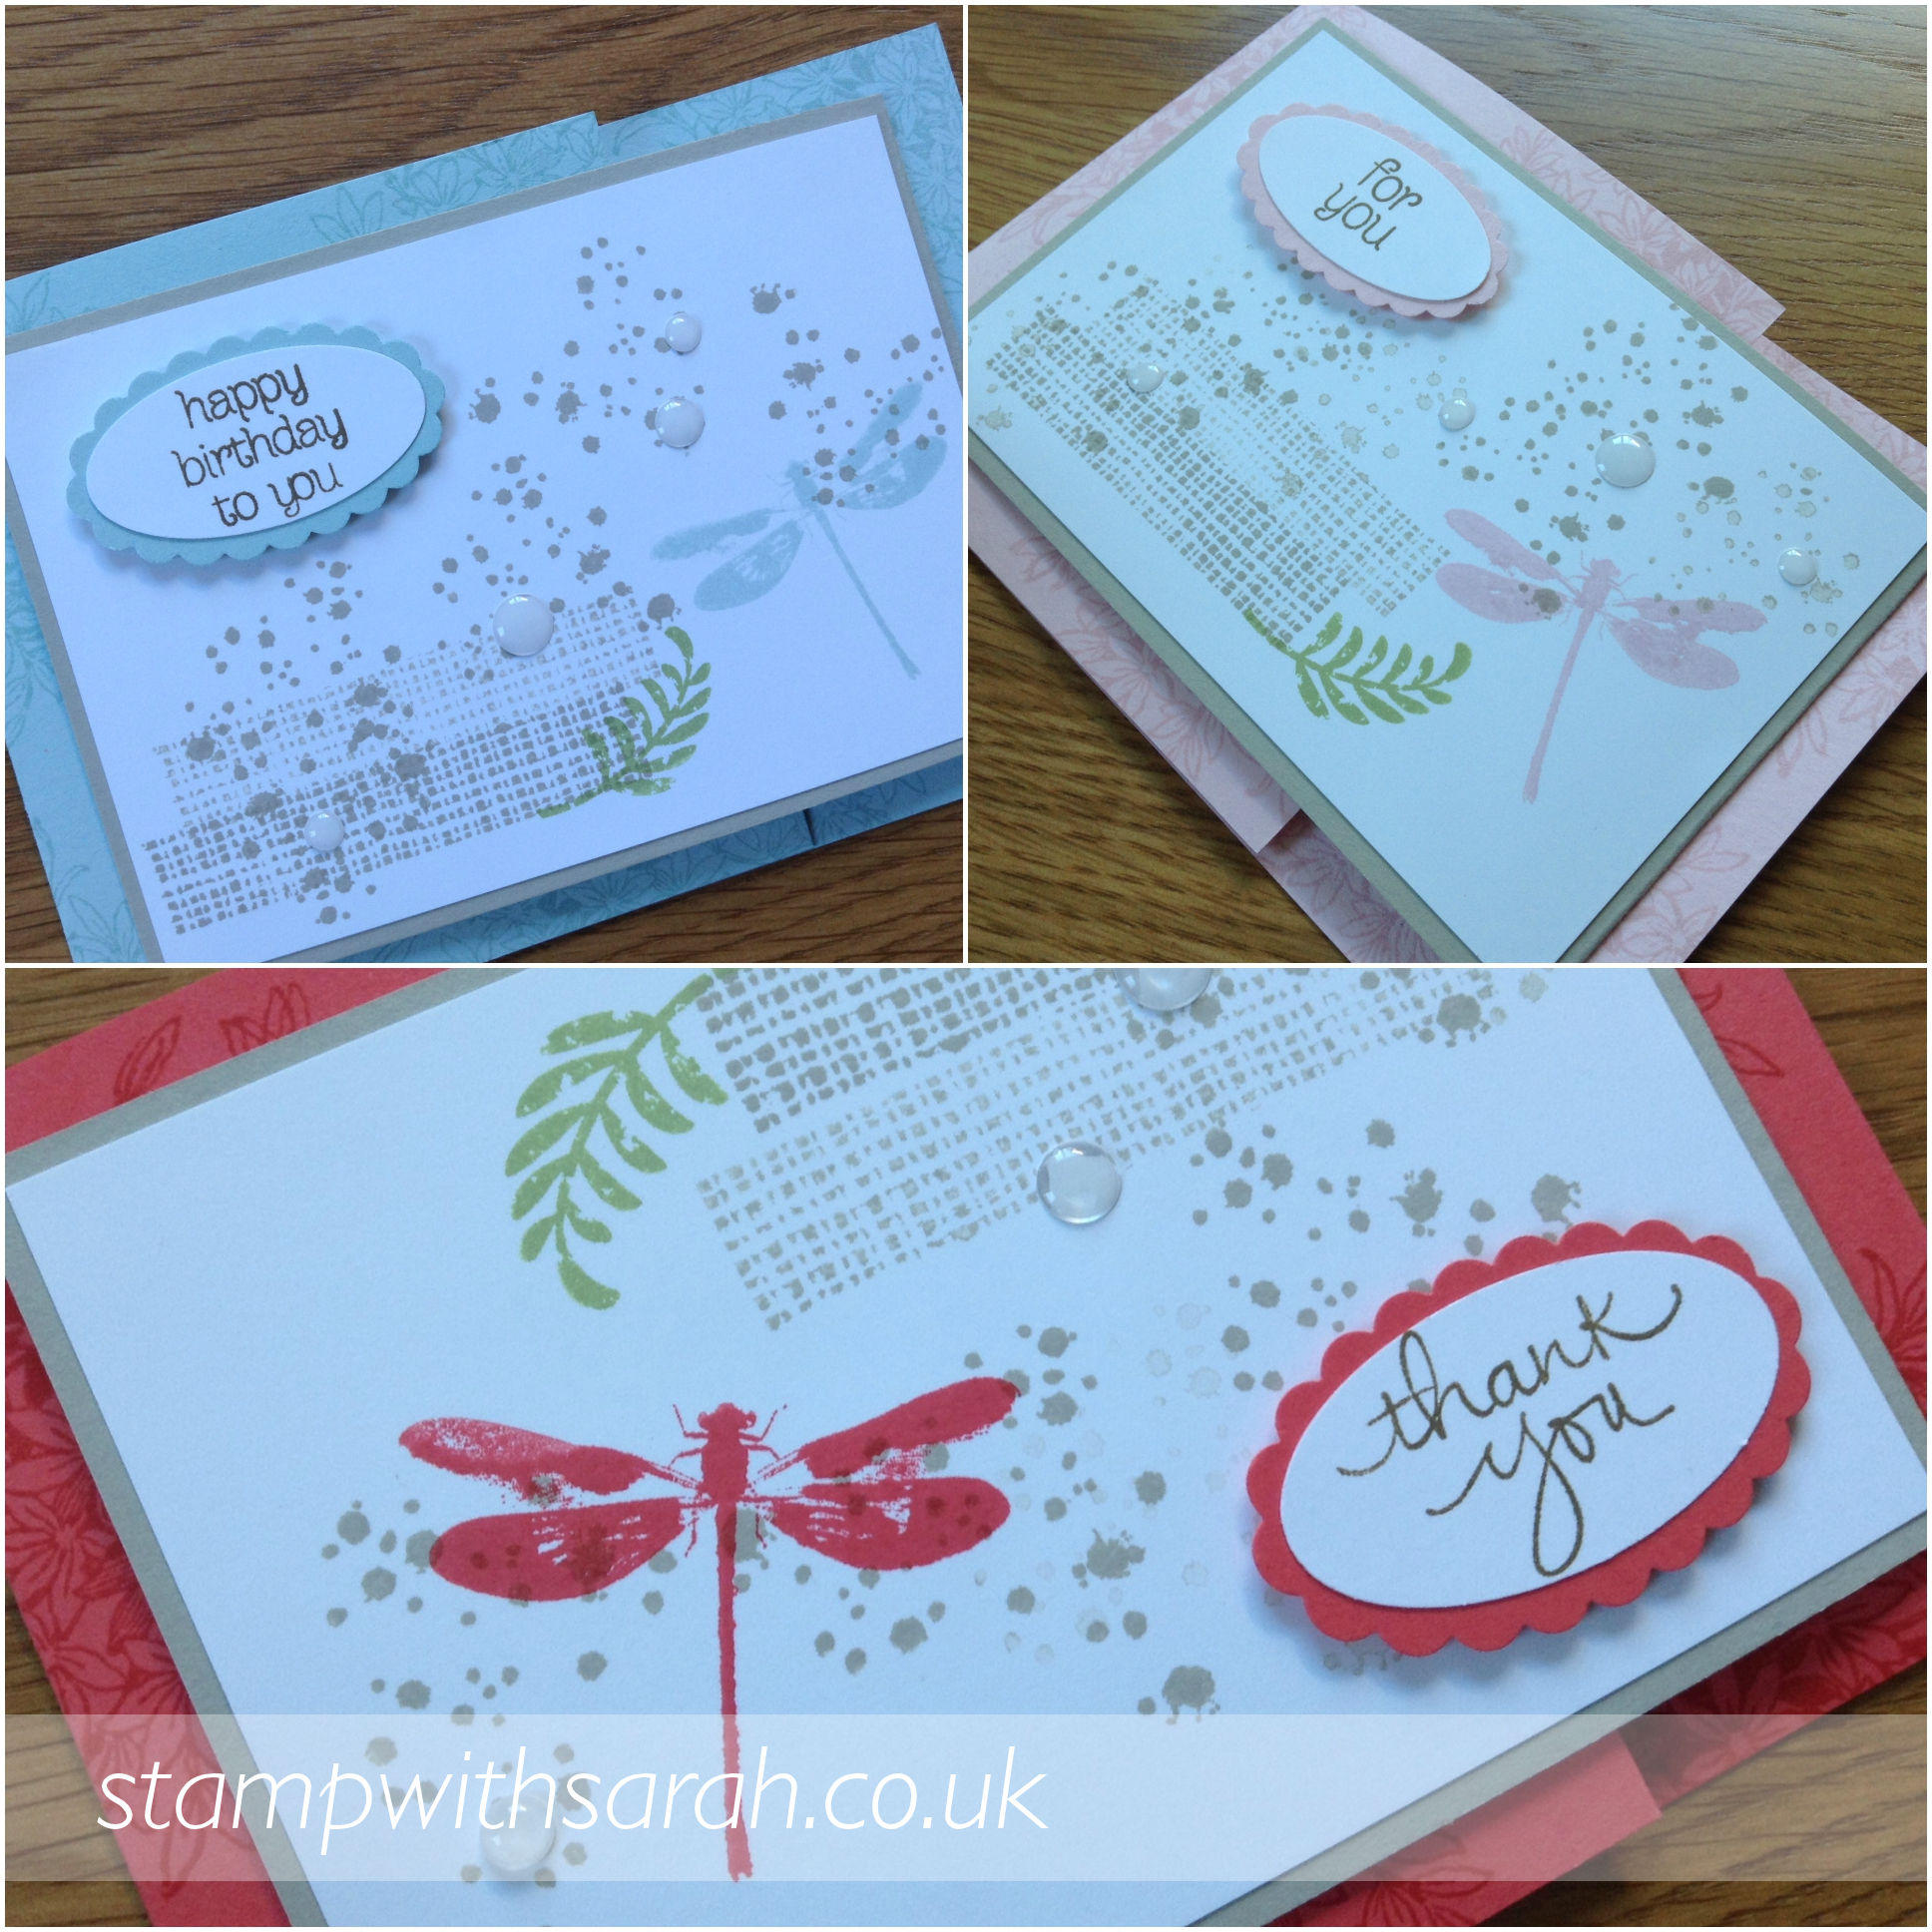 Flip Flop cards collection using Awesomely Artistic stamp set by Stampin' Up! UK